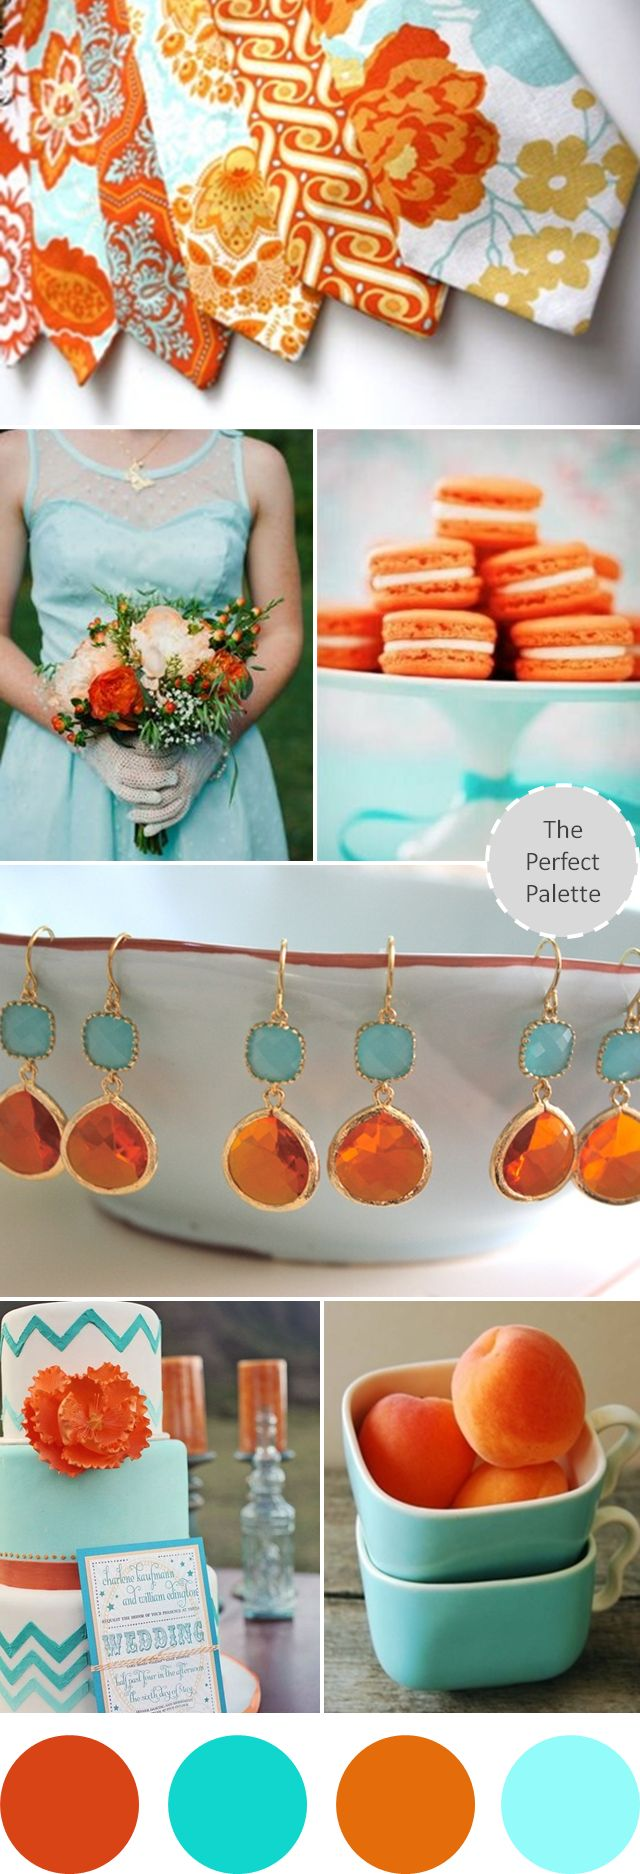 Wedding Colors I Love | Shades of Orange + Aqua!